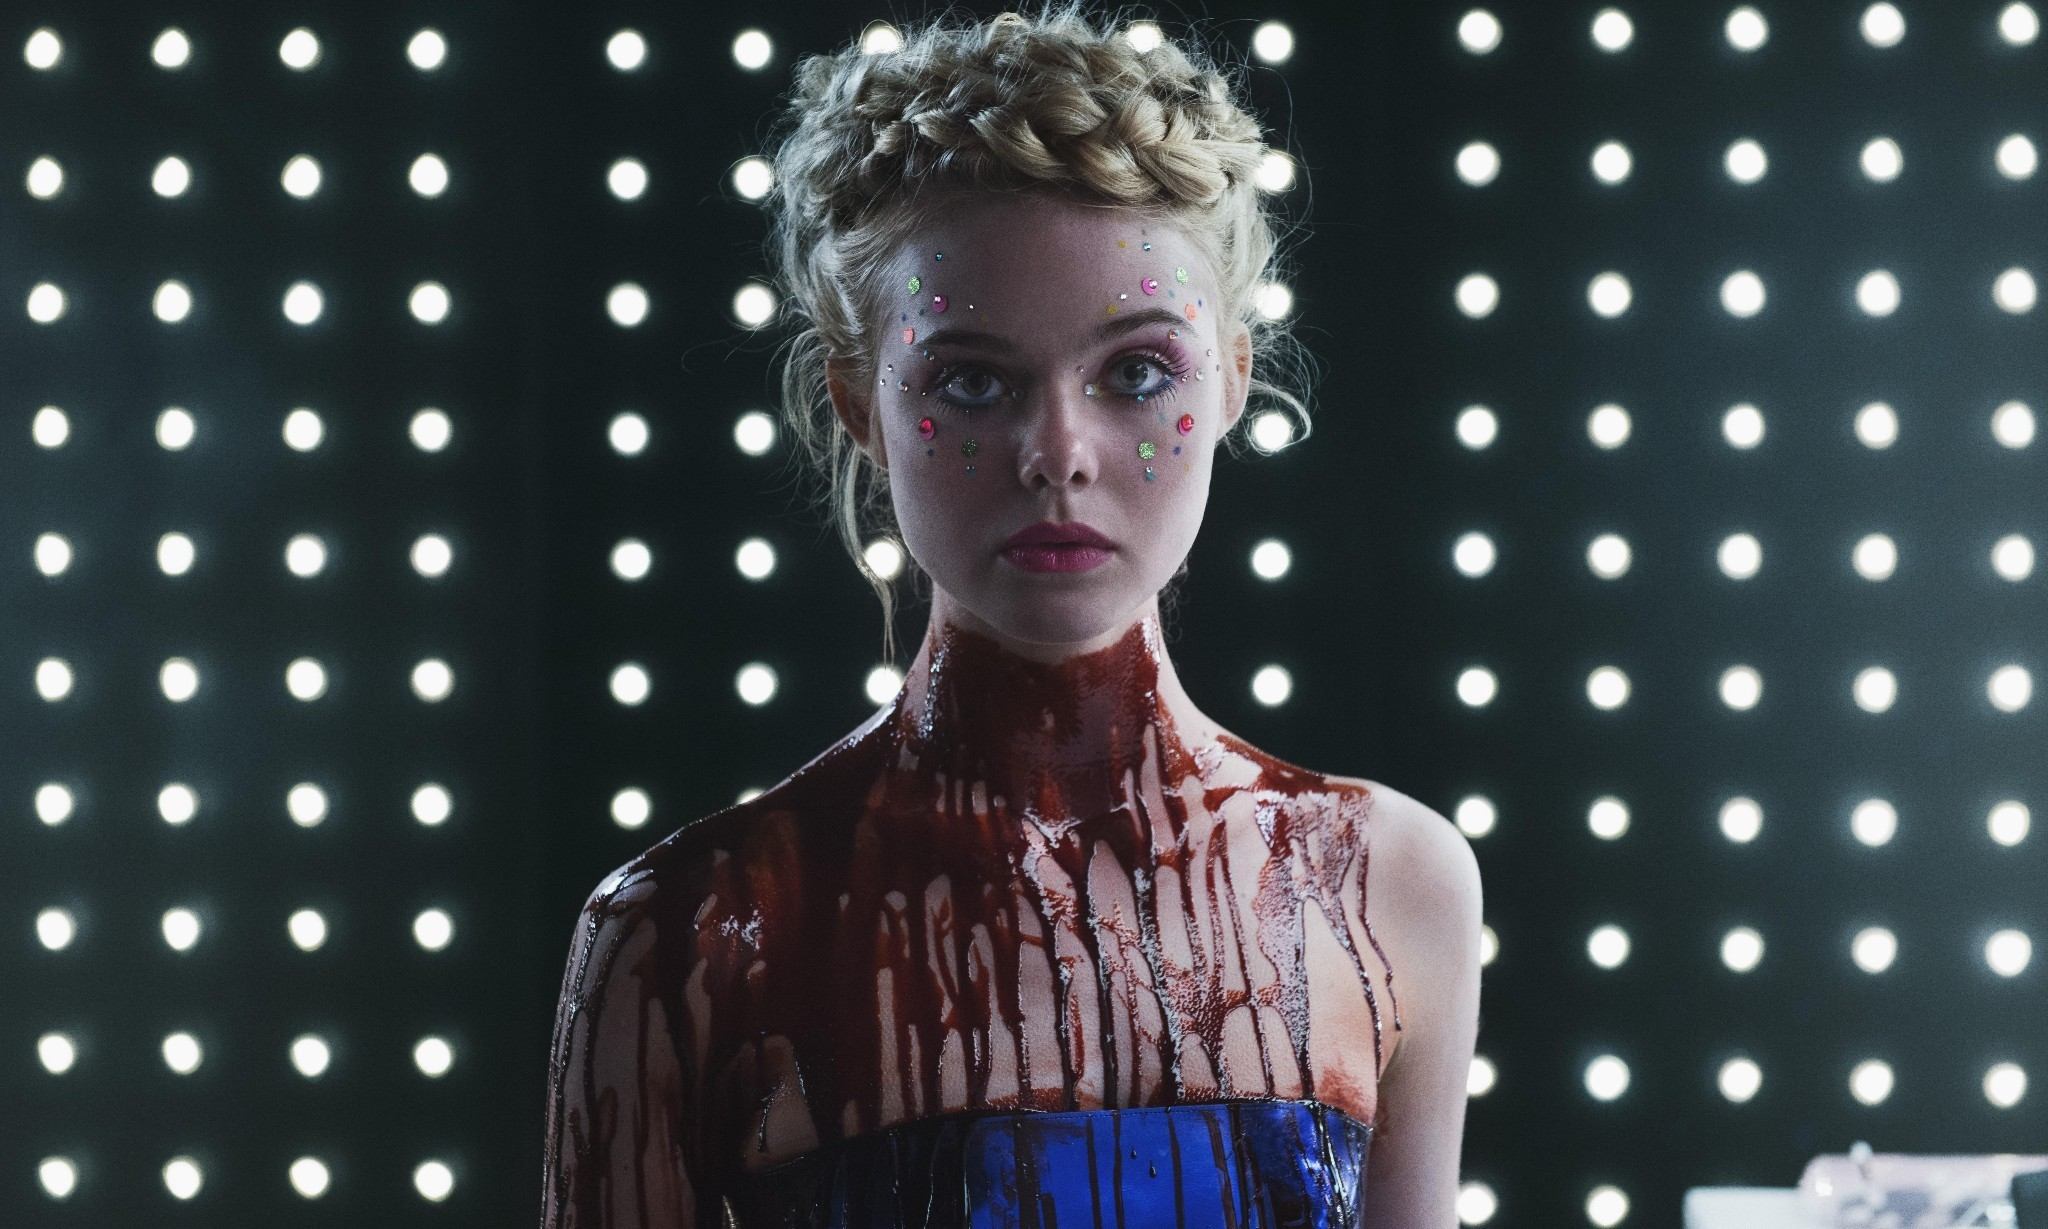 The Neon Demon review: Nicolas Winding Refn makes Zoolander 3, but erotic and evil